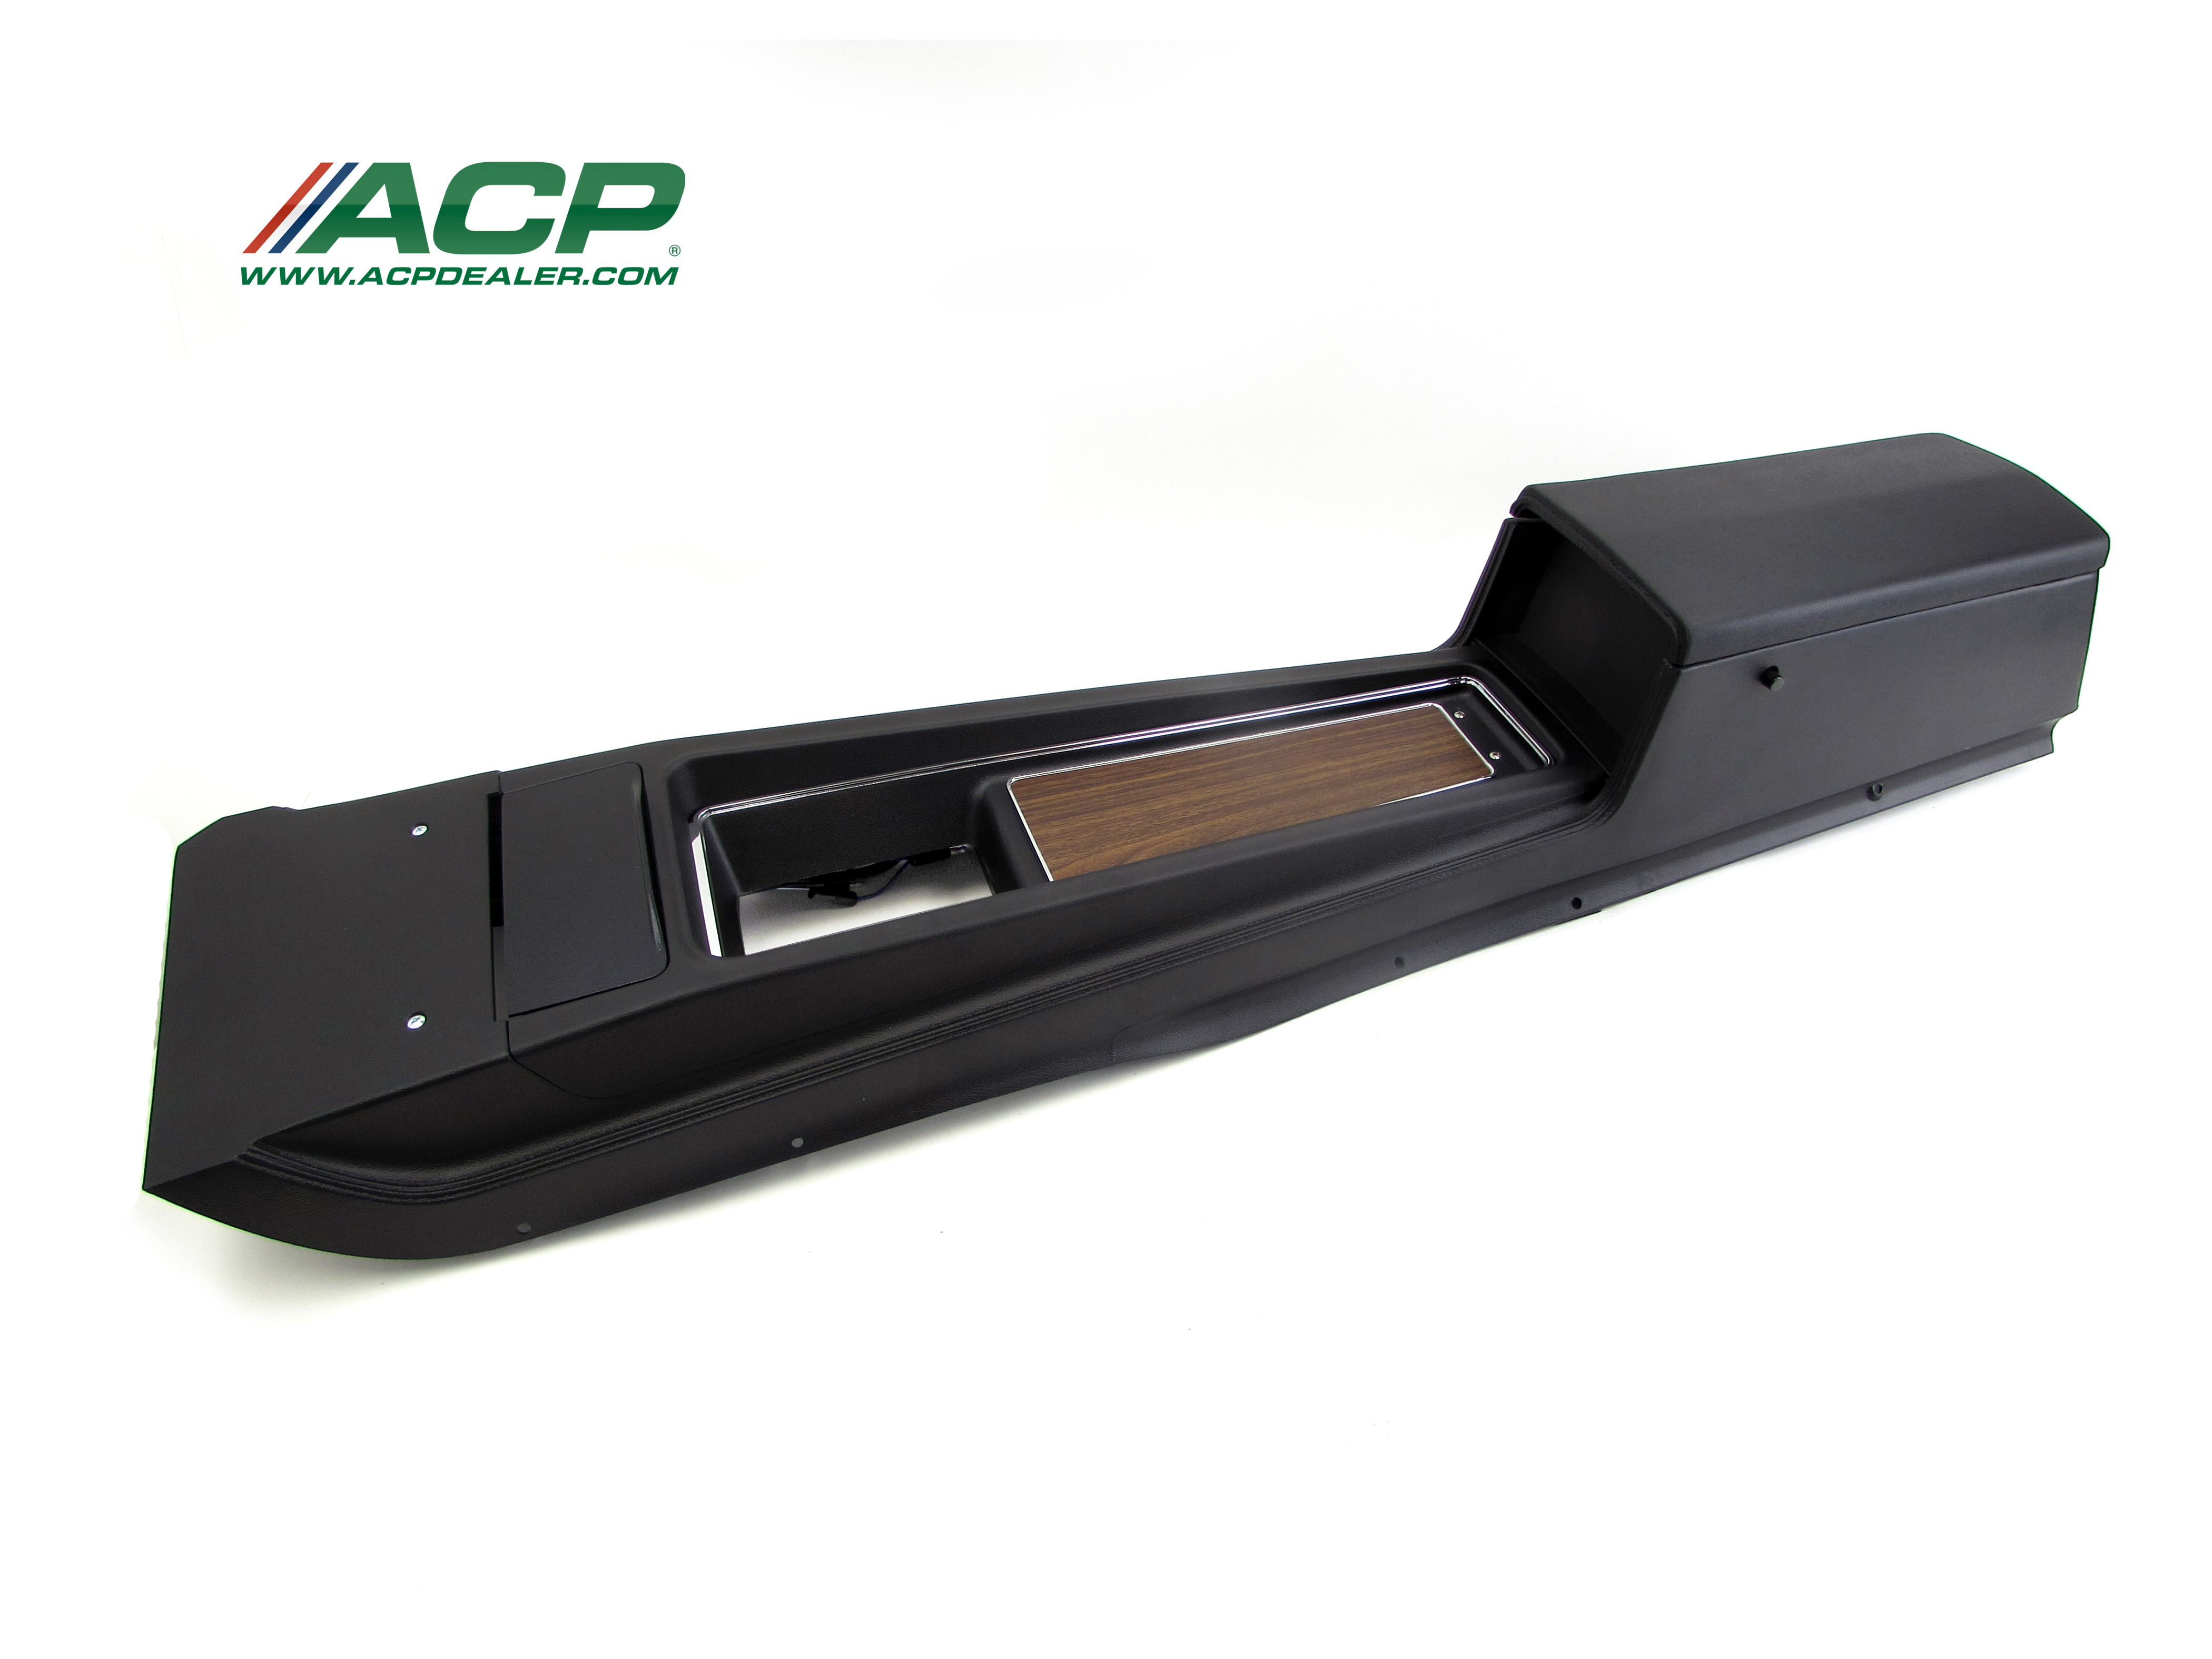 1970 Mustang Console Assembly  New Reproduction W Auto Transmission Black in Color W/Woodgrain Insert